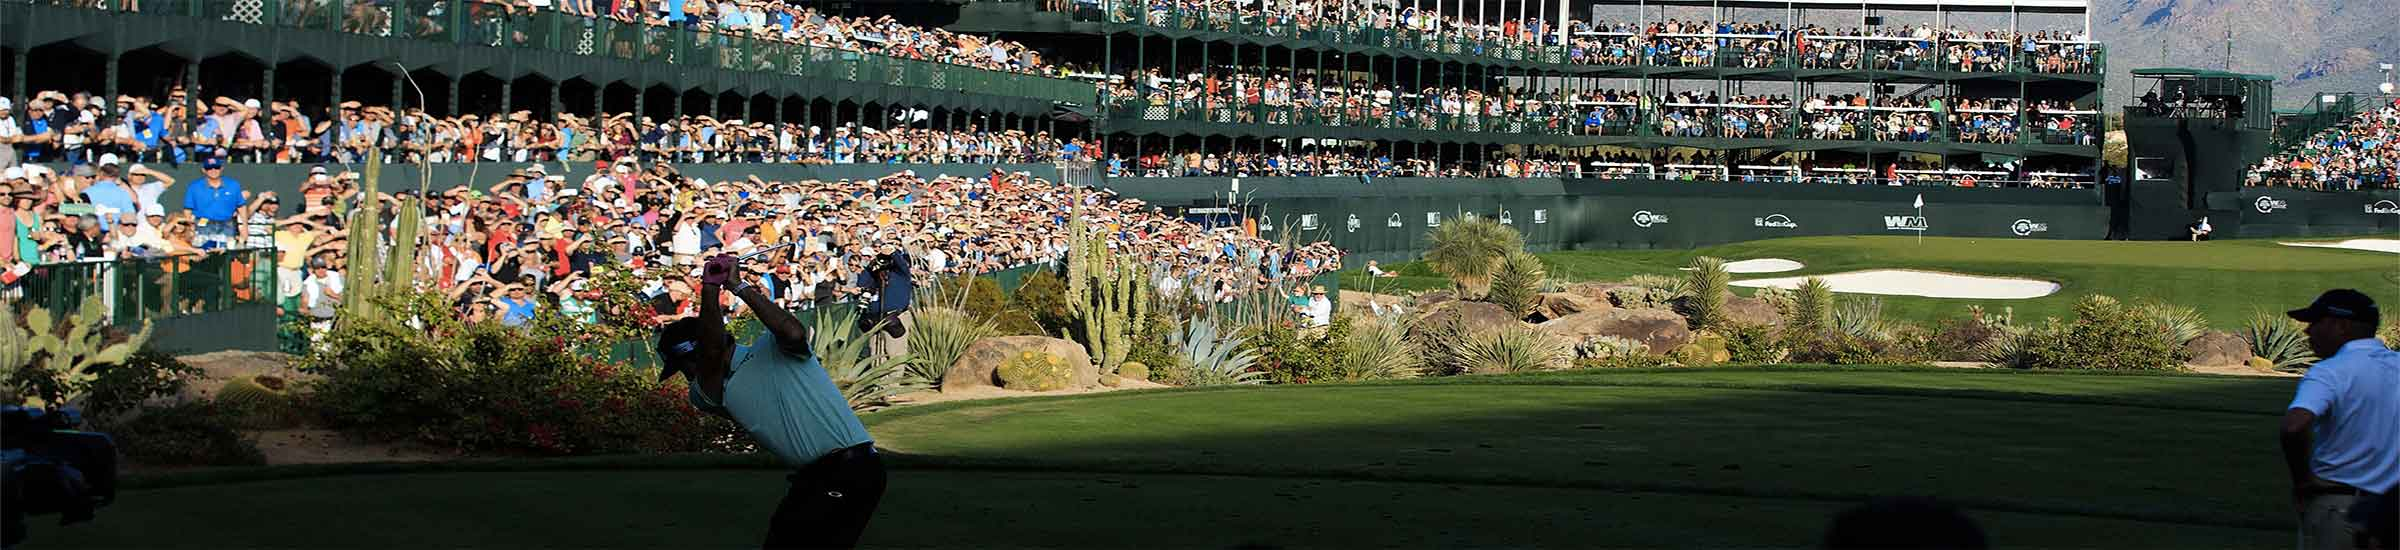 Waste Management Phoenix Open